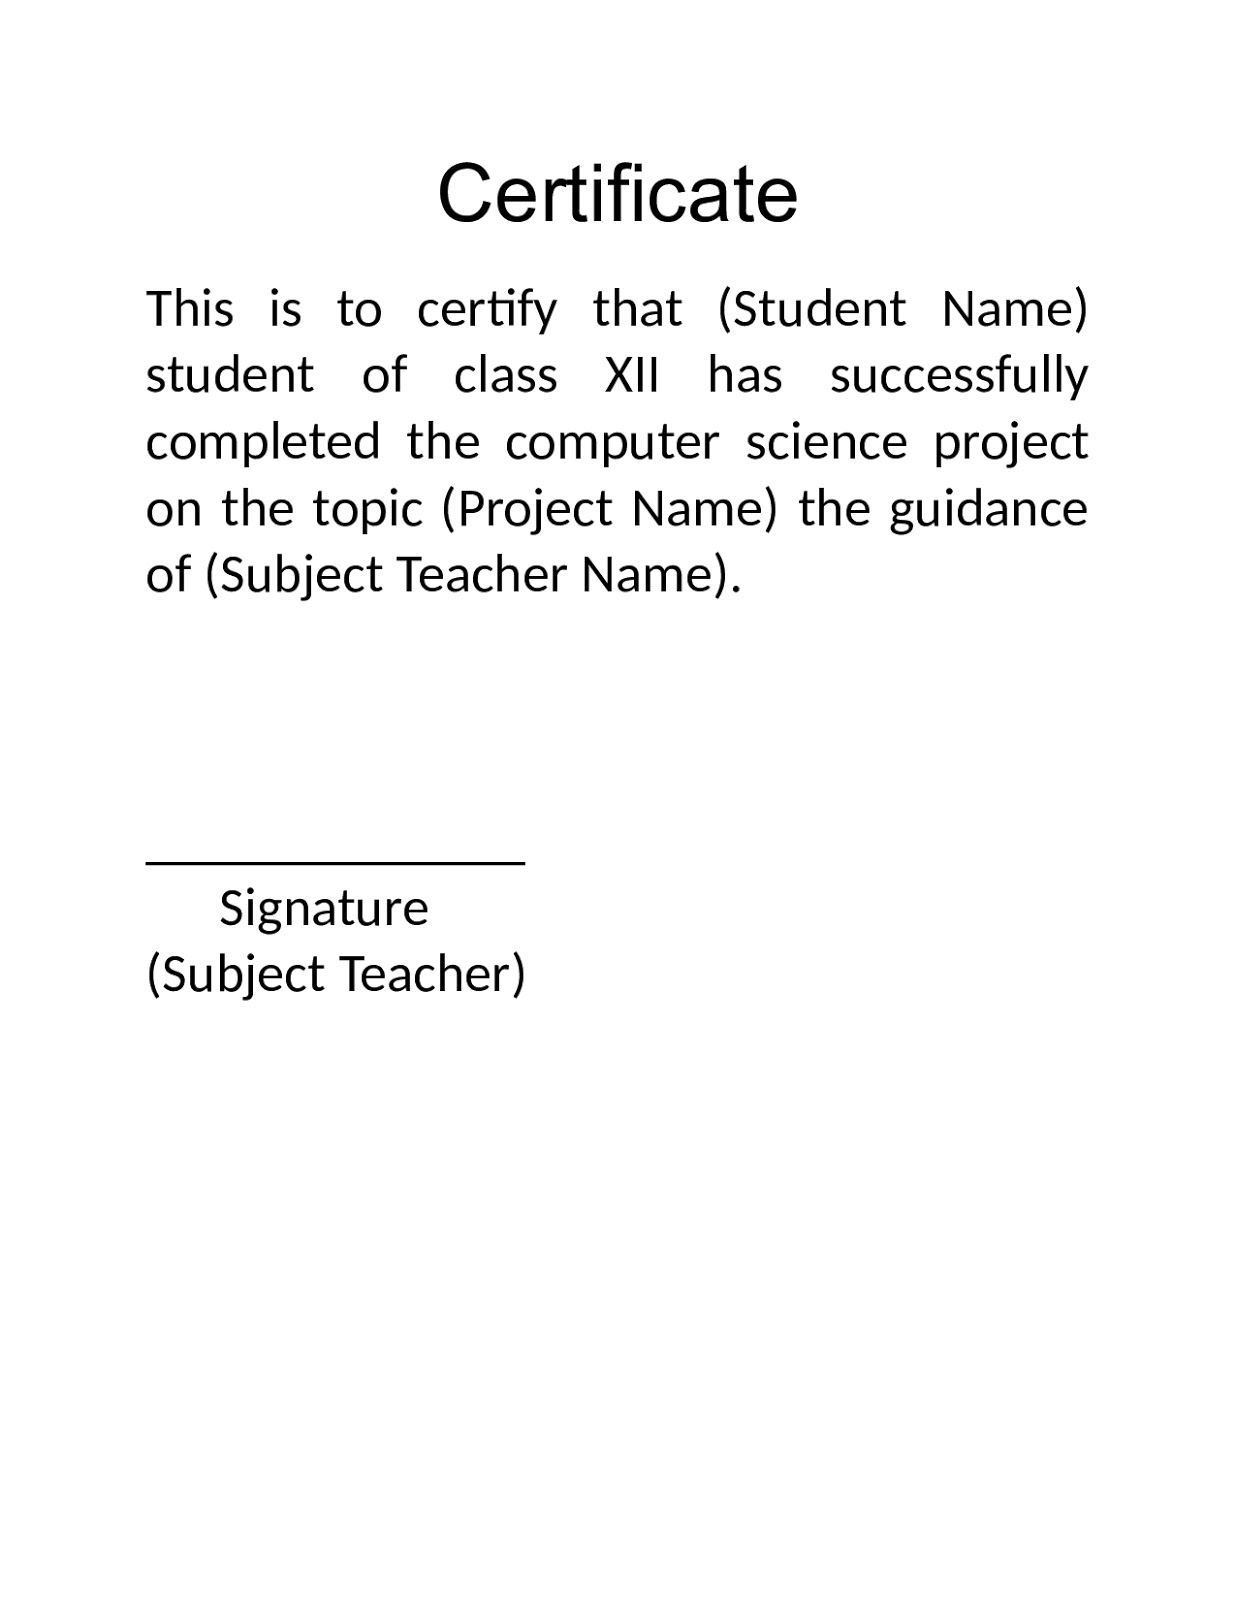 comp science projects